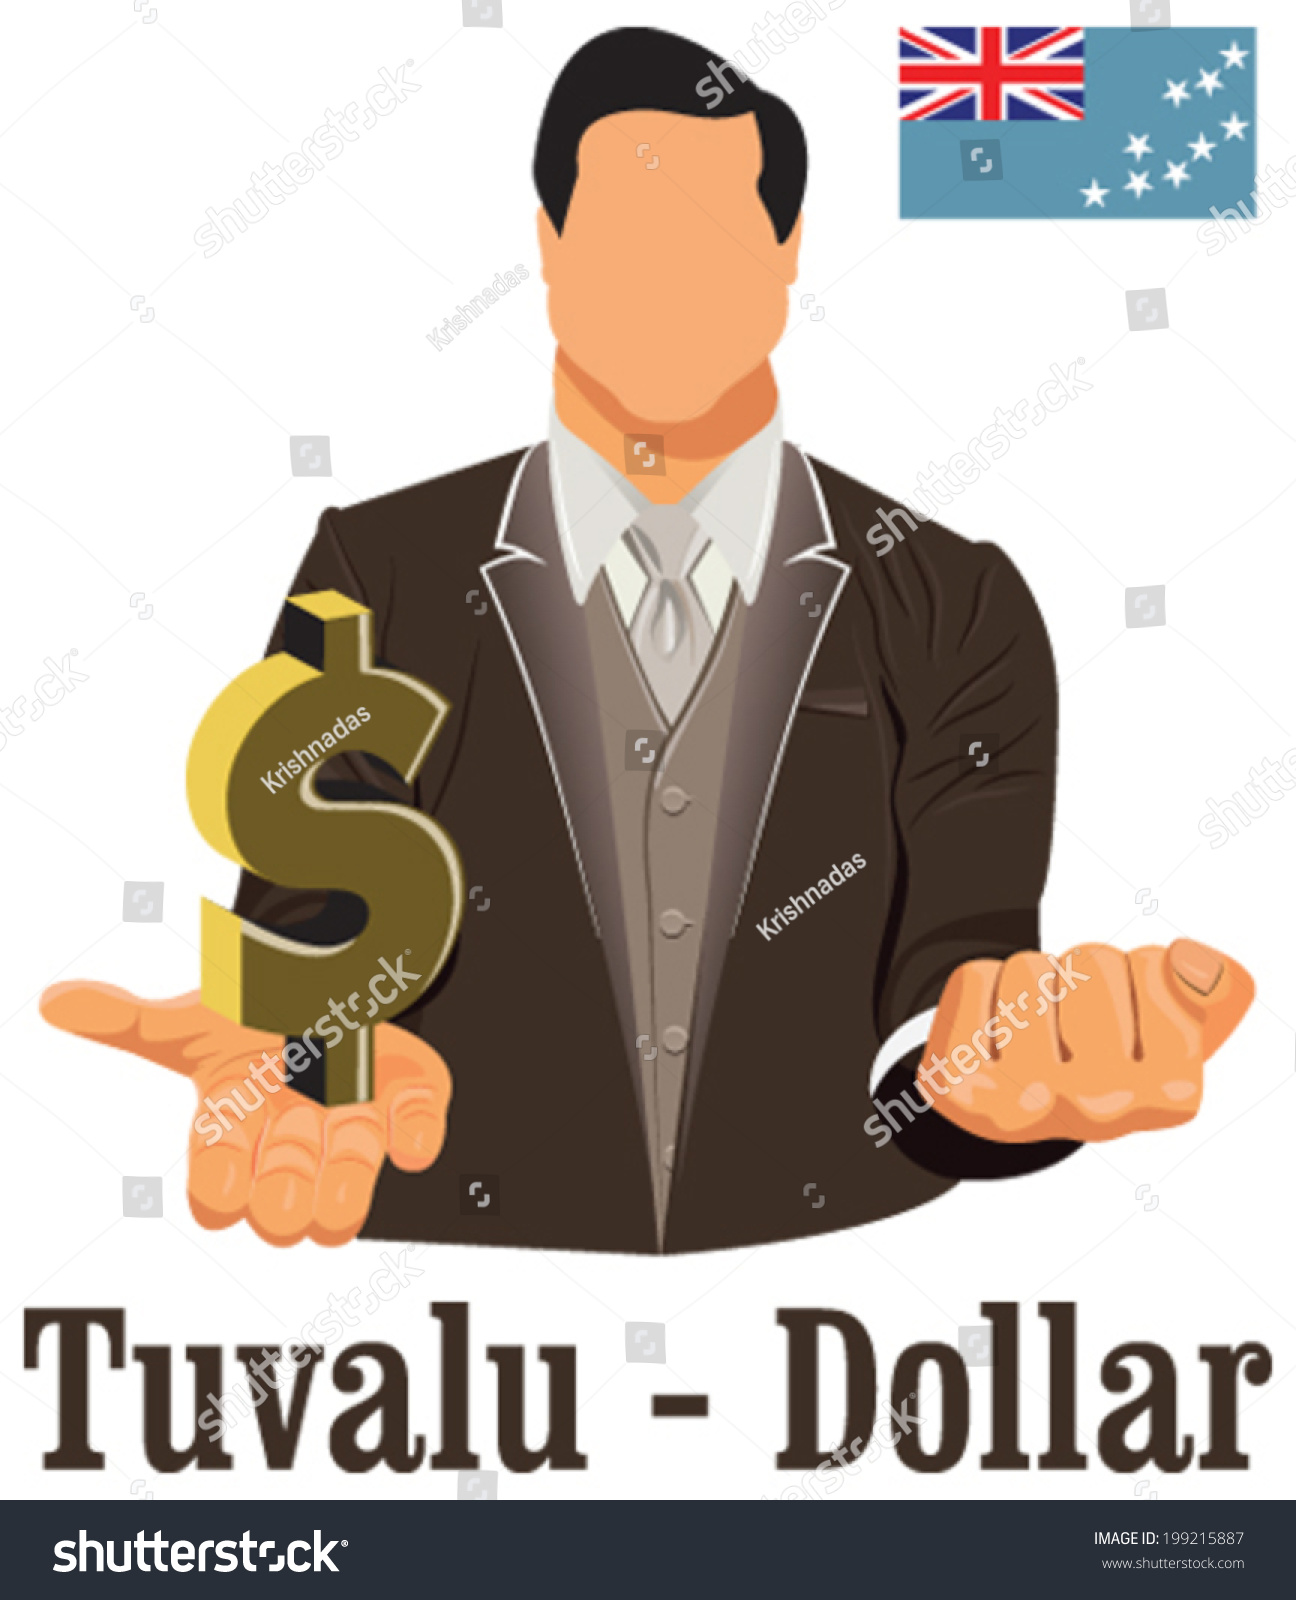 Tuvalu currency symbol dollar representing money stock vector tuvalu currency symbol dollar representing money and flag vector design concept of businessman in suit biocorpaavc